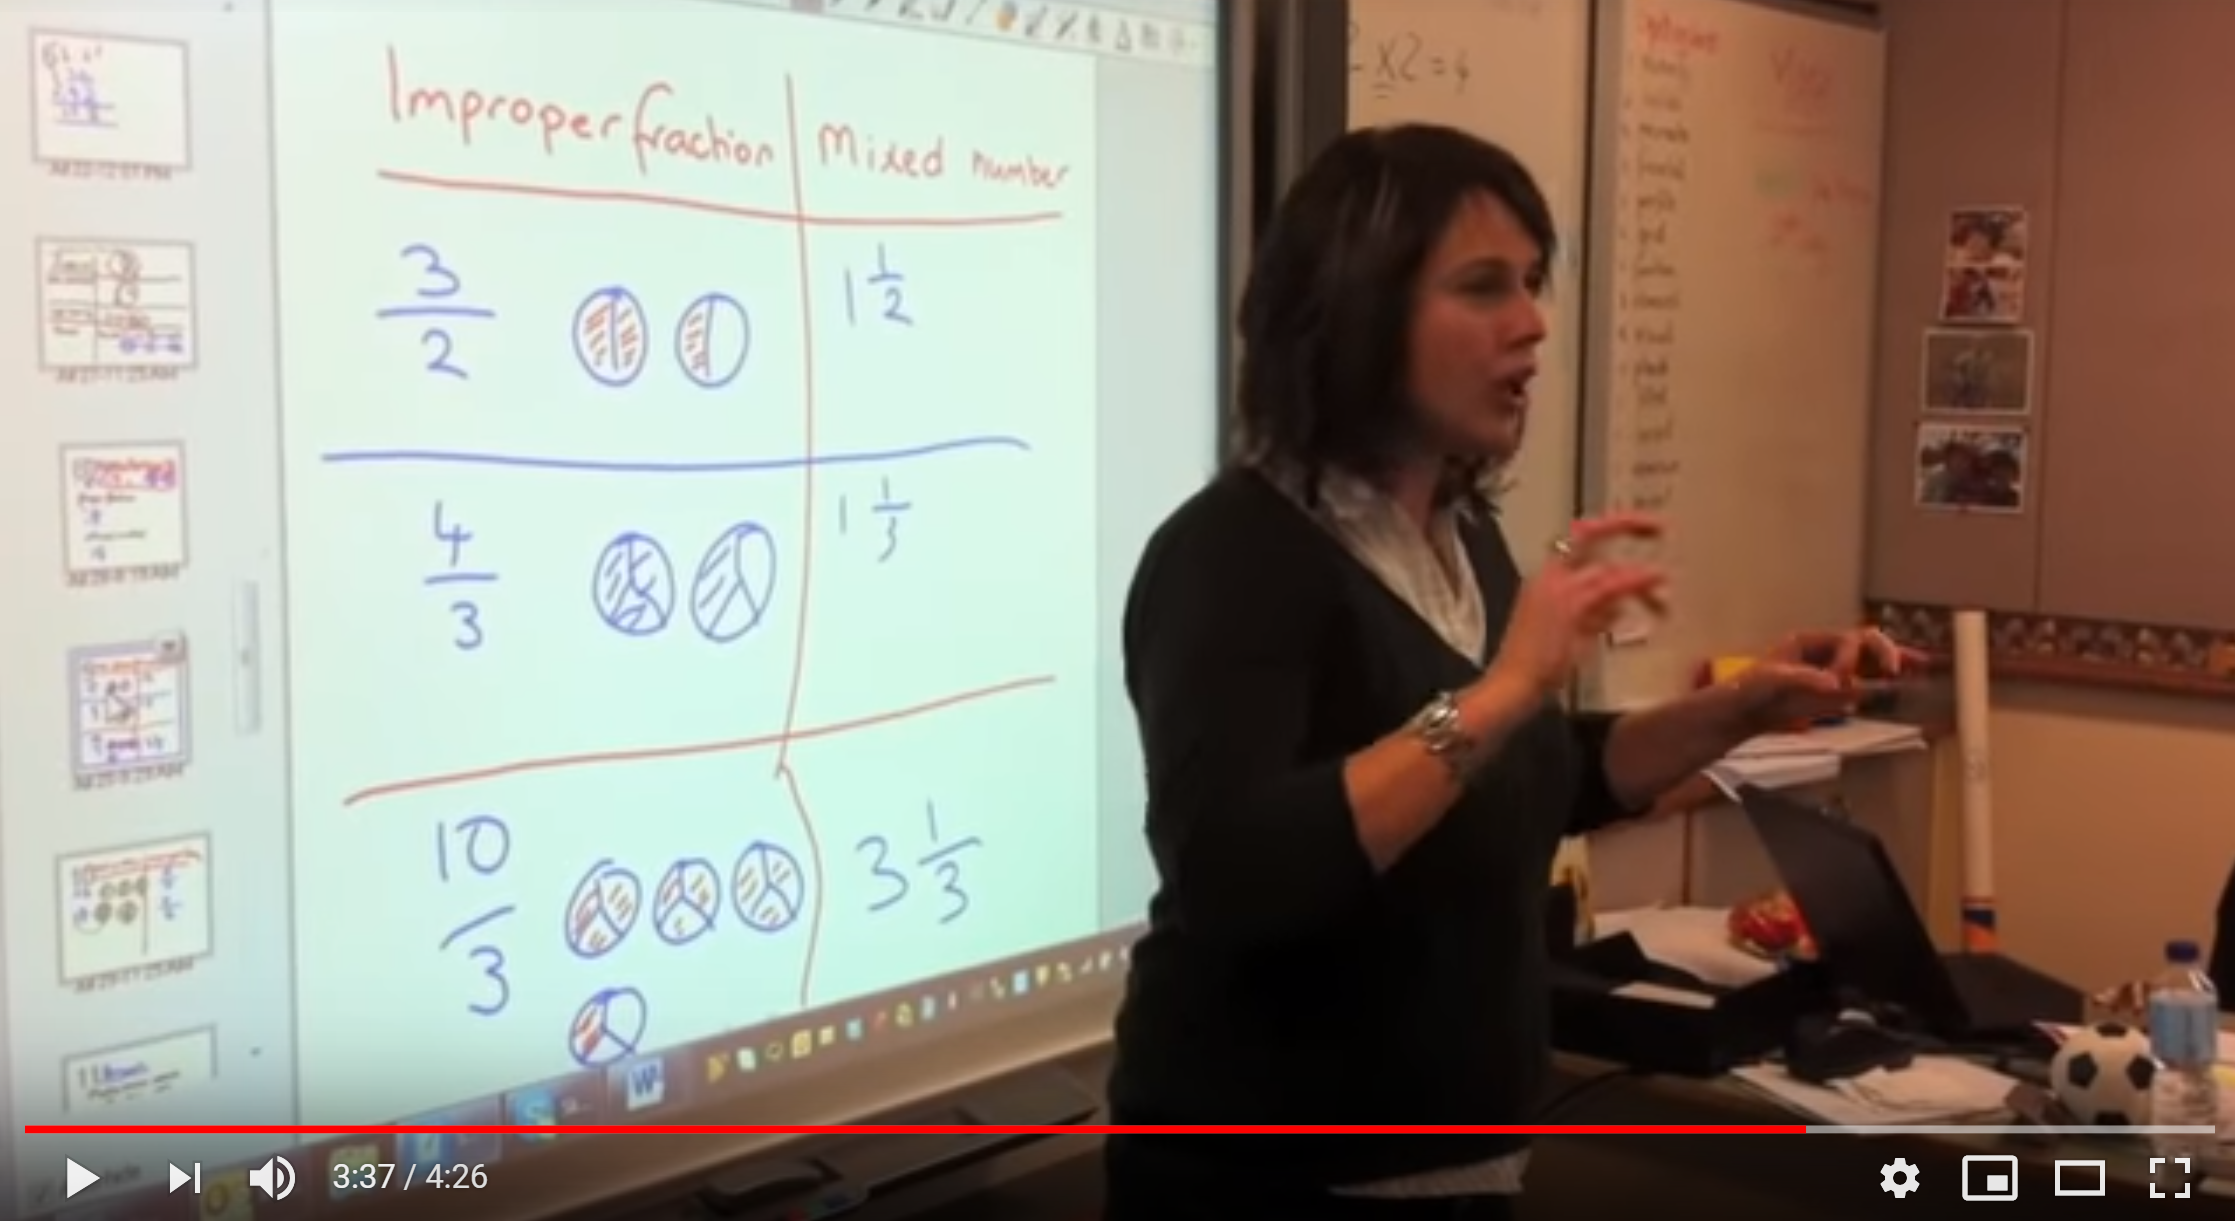 A screenshot of a video that shows a woman in a classroom signing to her students (off camera). Behind her is a projector screen with information about fractions.